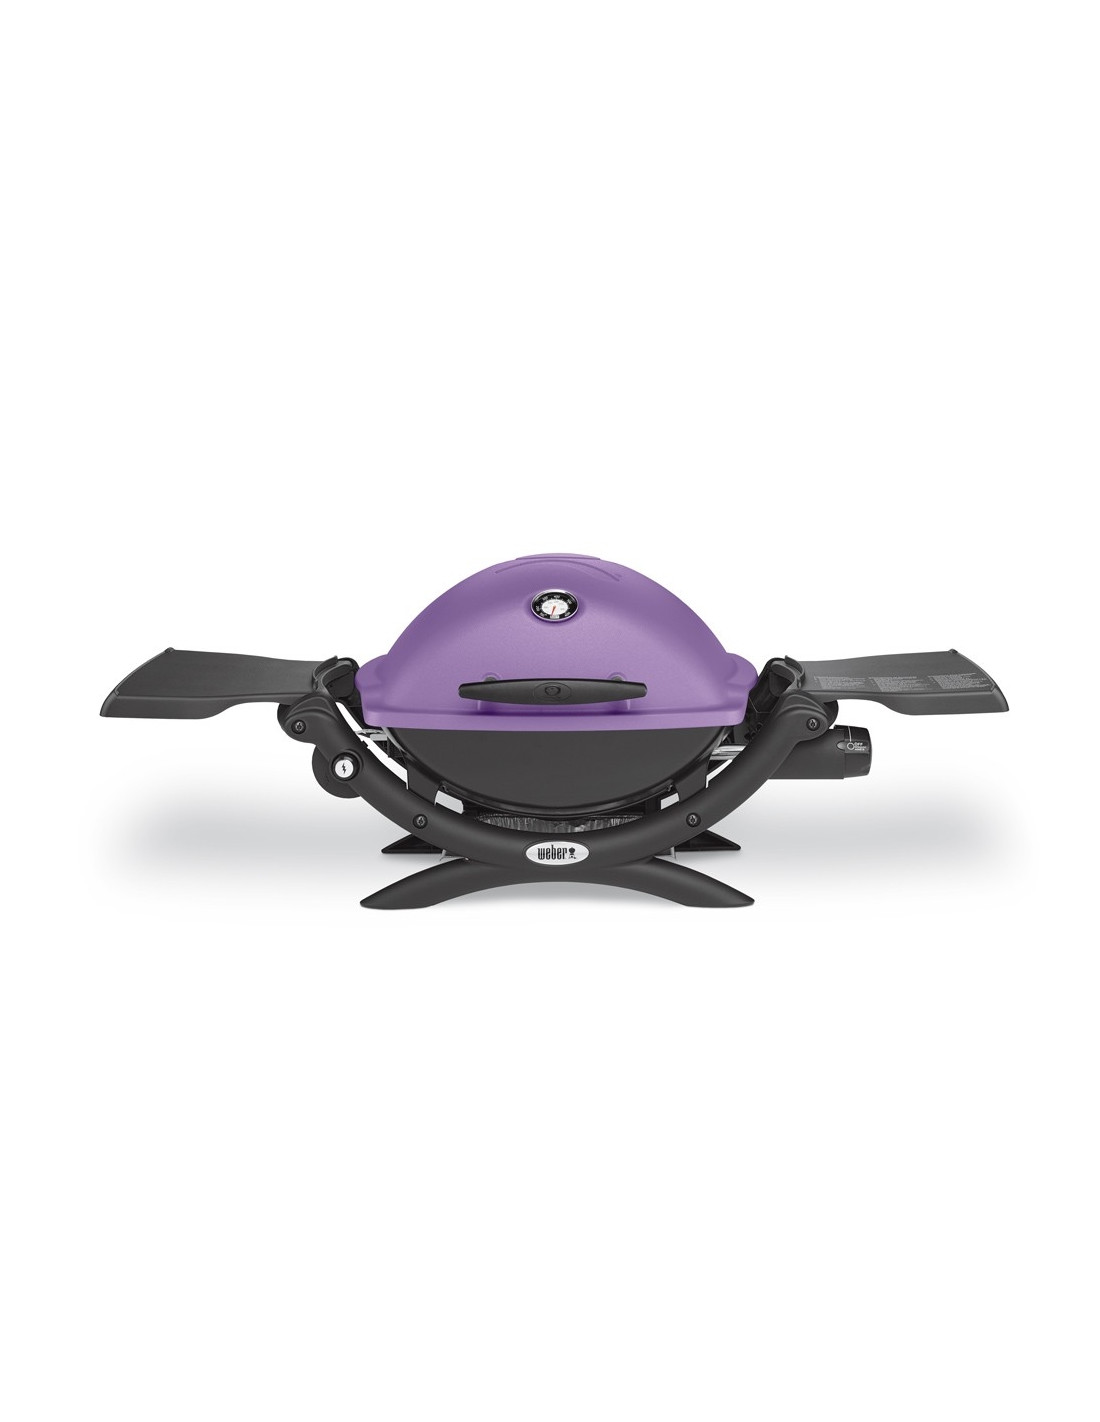 barbecue weber gaz q1200 violet esprit barbecue. Black Bedroom Furniture Sets. Home Design Ideas